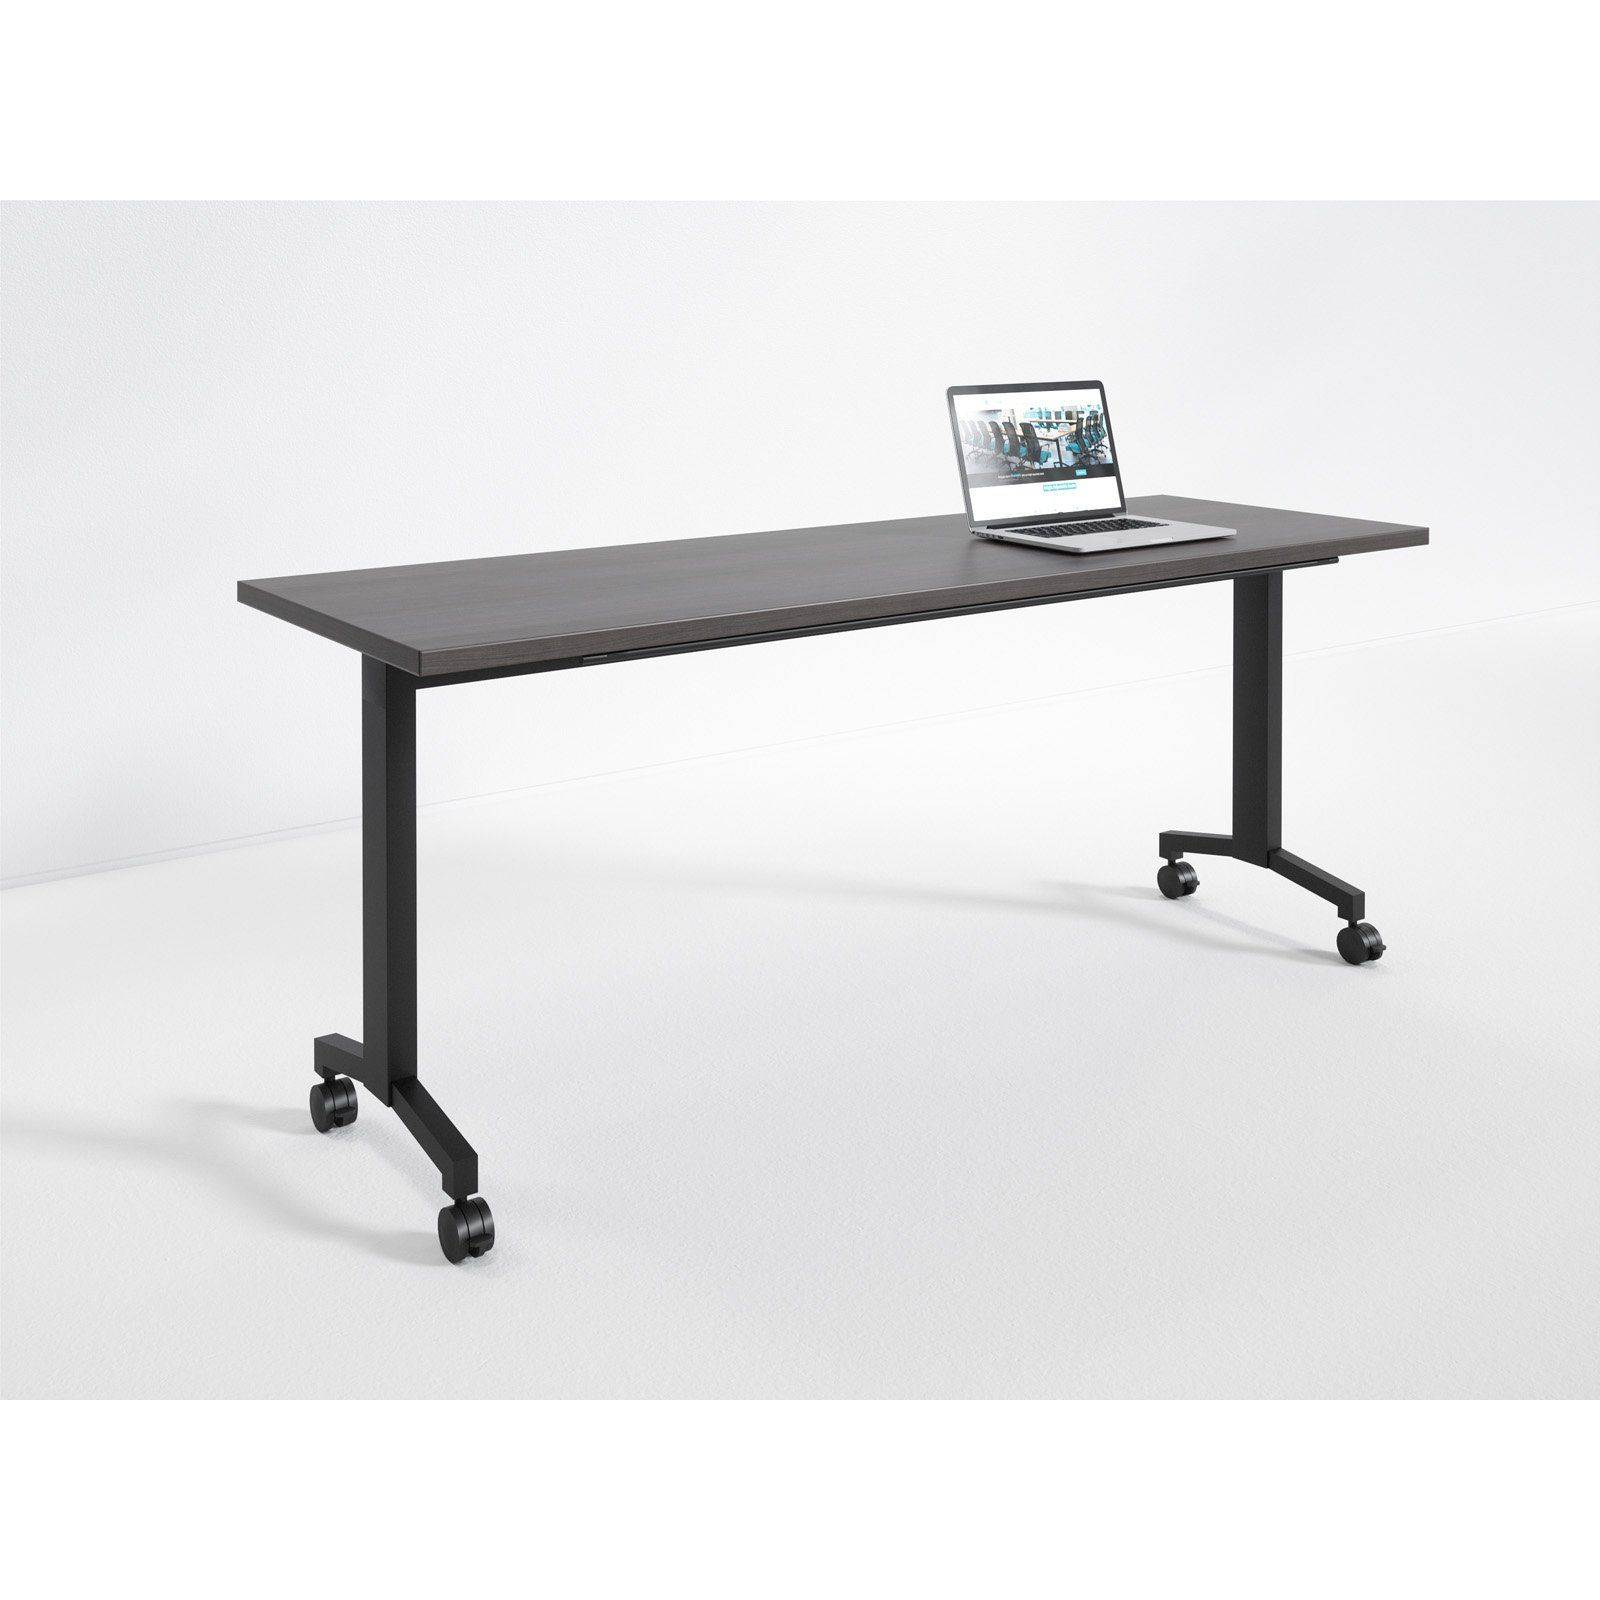 Flip the Table Inspirational Rightangle Flip Training Table with Casters